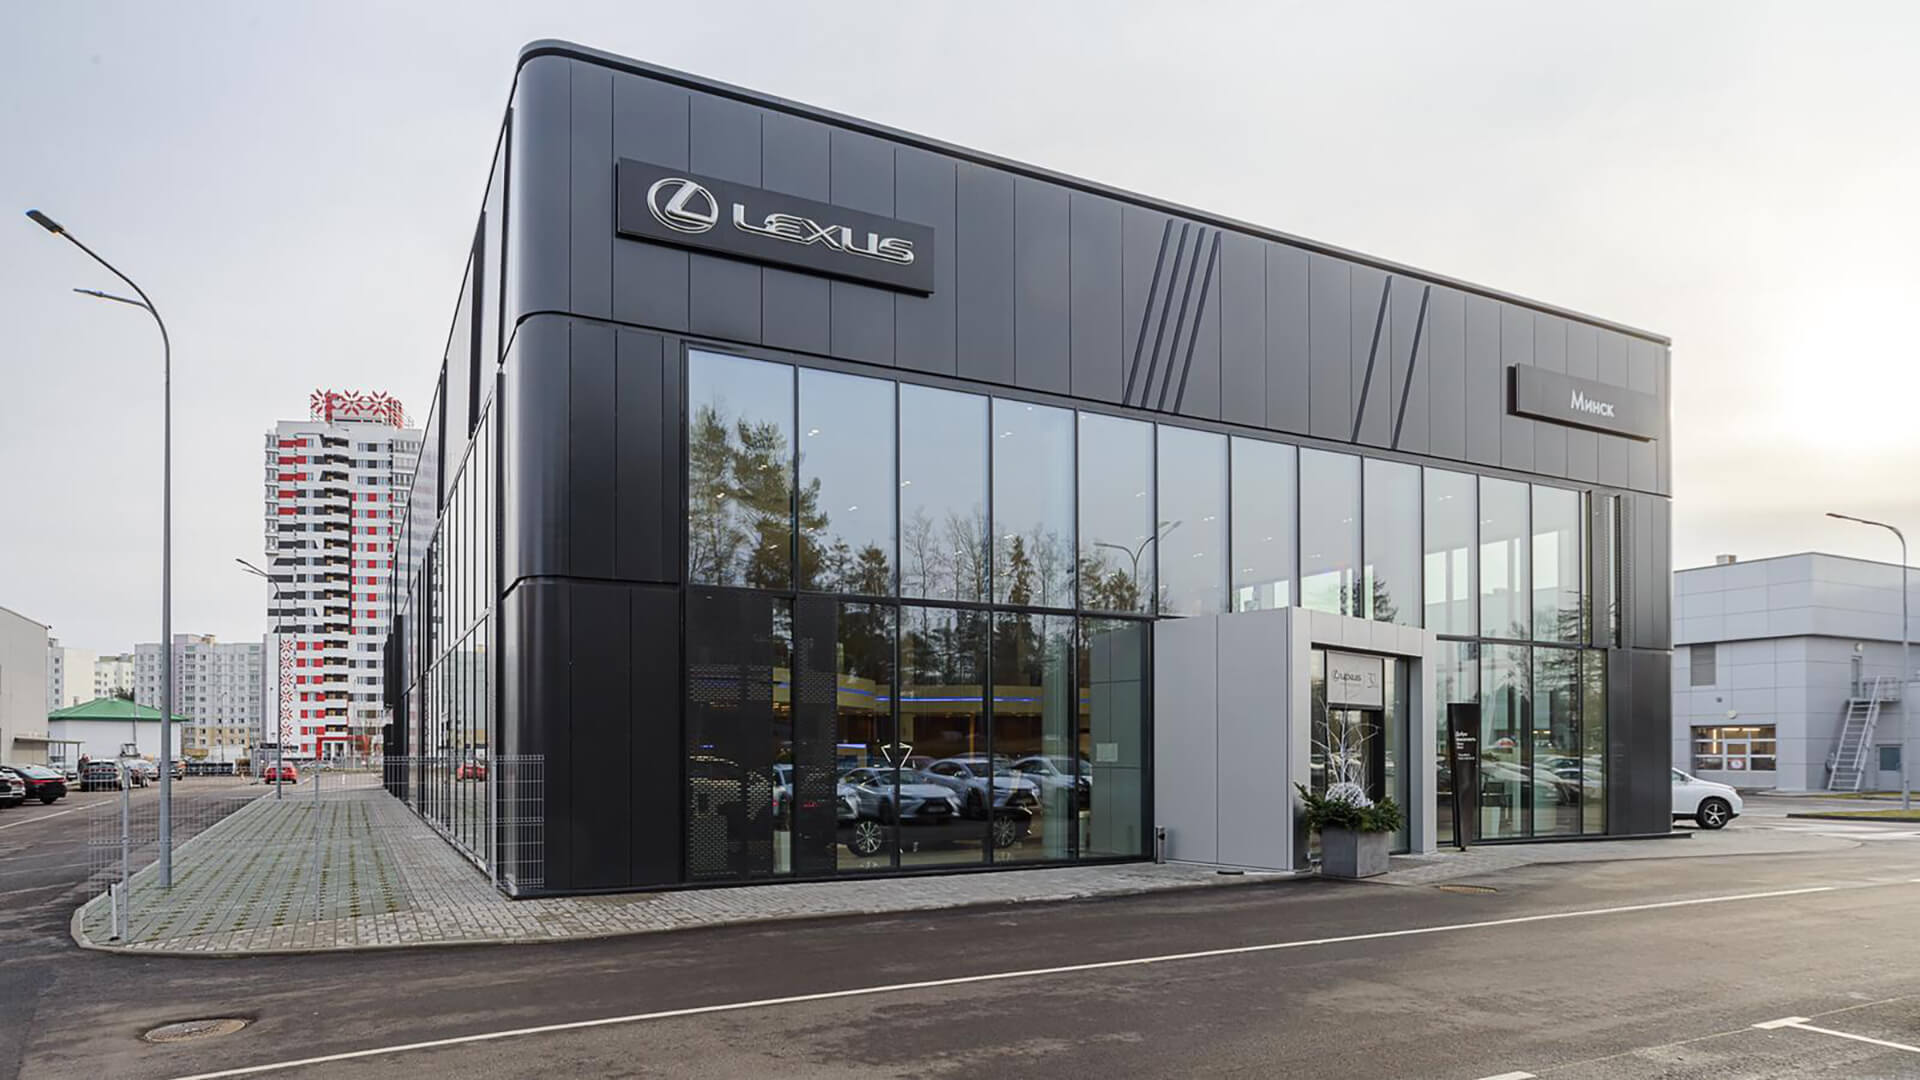 LEXUS <br> Car dealership